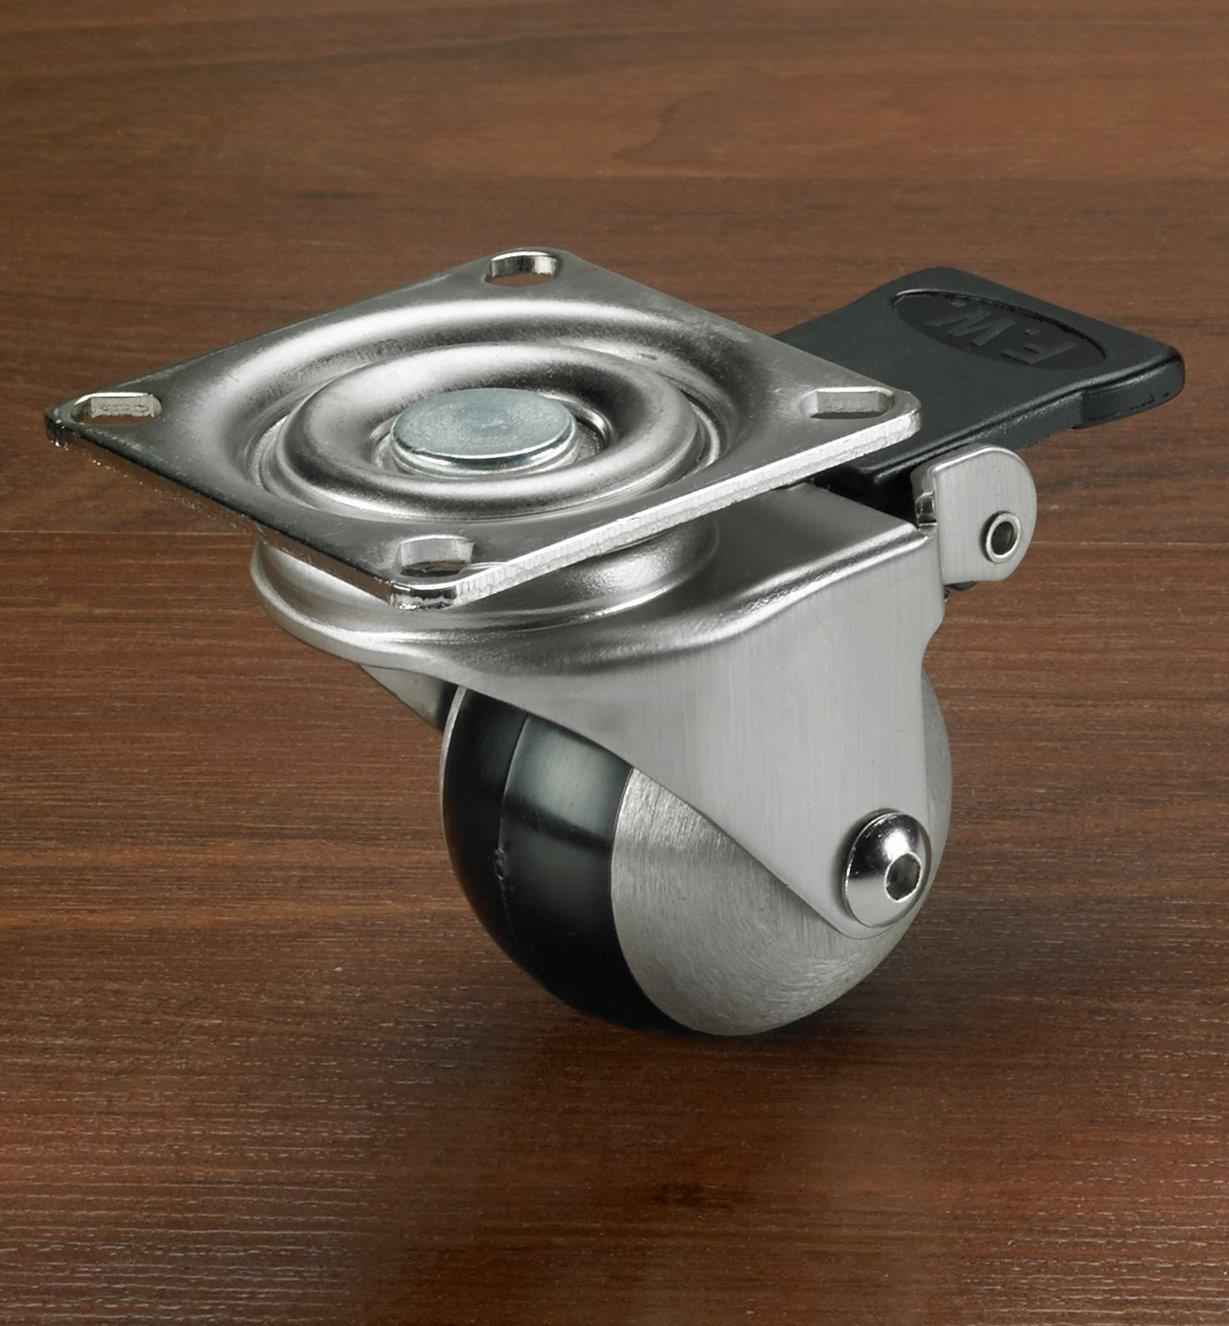 00K2630 - Aluminum & Steel Ball Caster, each